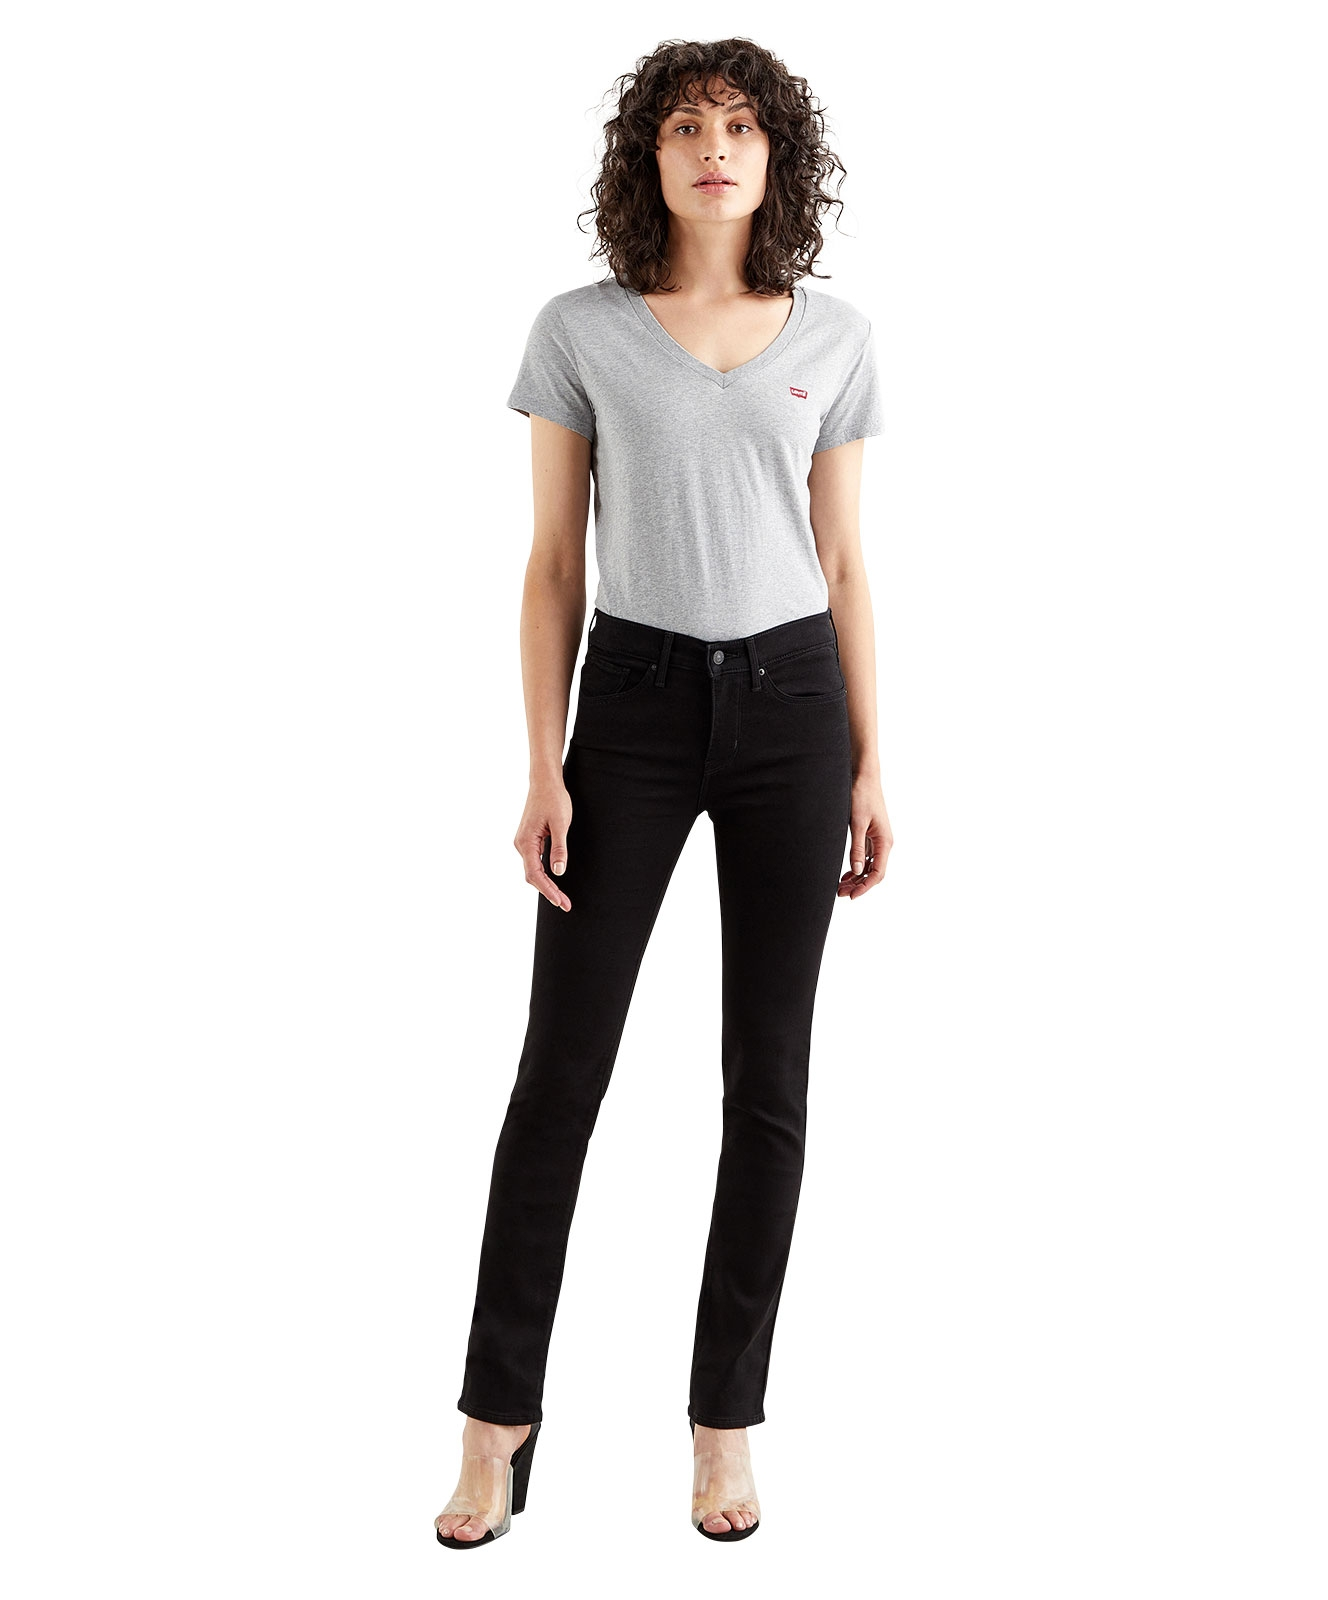 Hosen - Levis High Waisted Jeans 312 Shaping Slim in Soft Black  - Onlineshop Jeans Meile